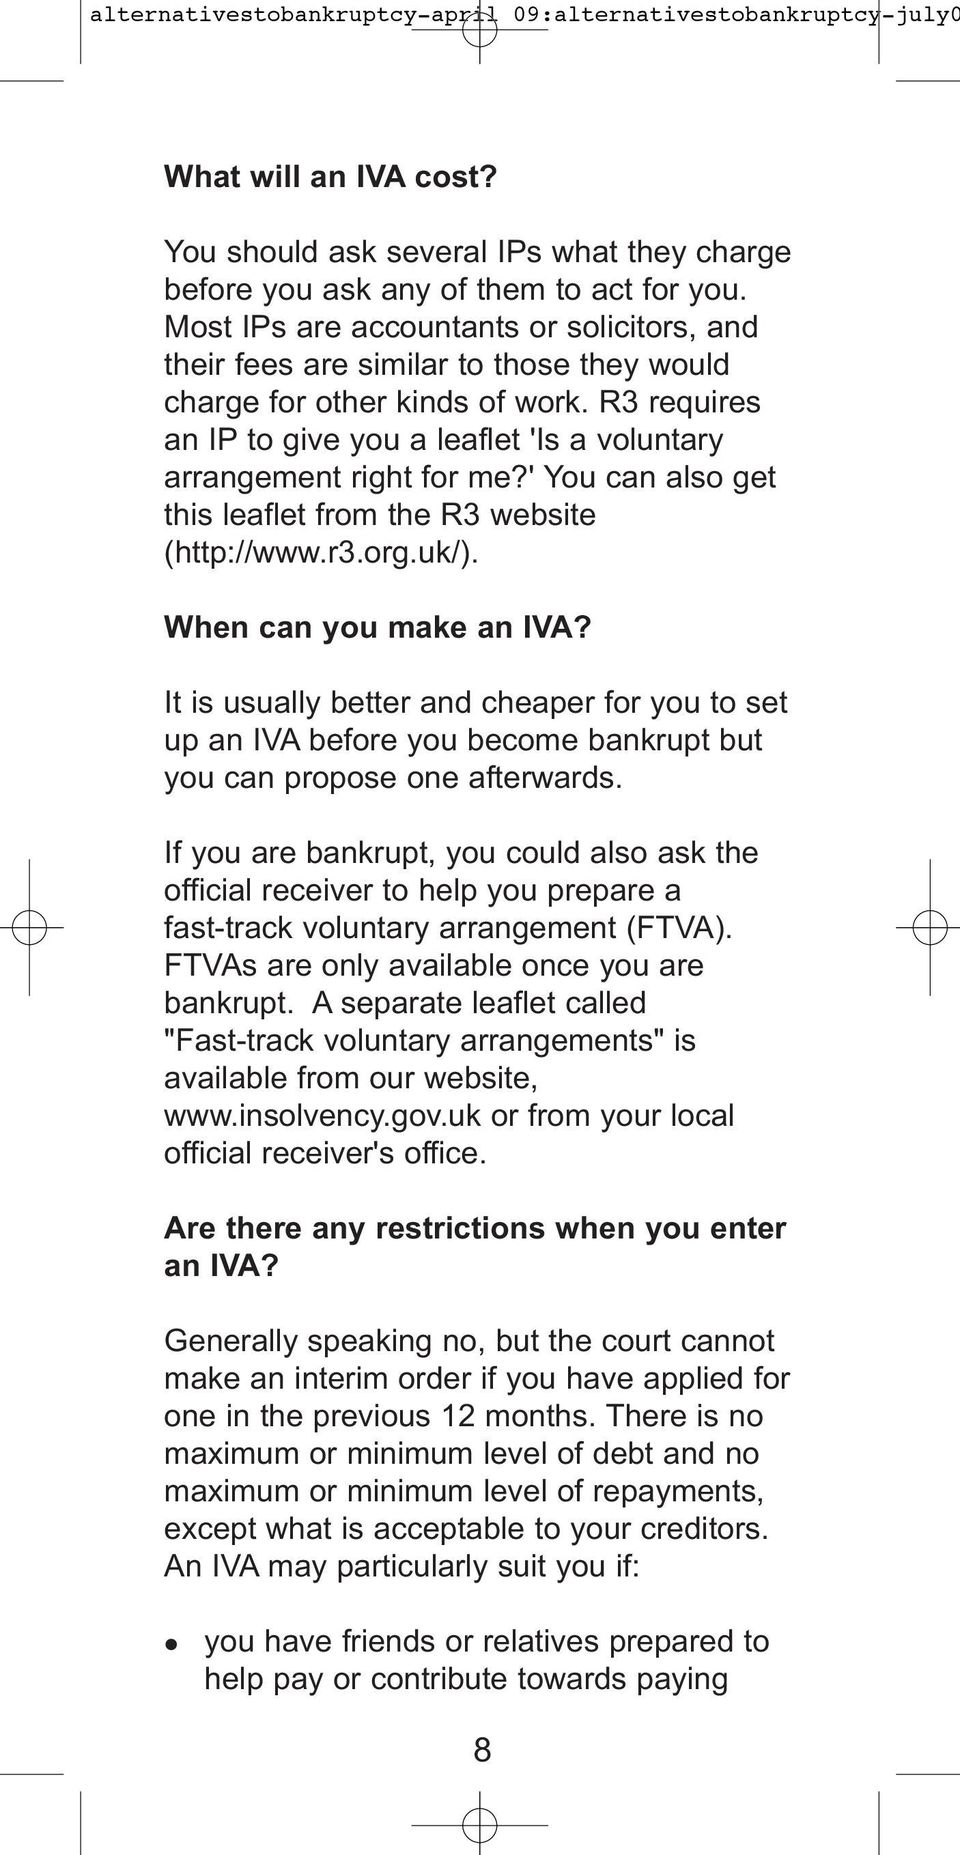 ' You can also get this leaflet from the R3 website (http://www.r3.org.uk/). When can you make an IVA?